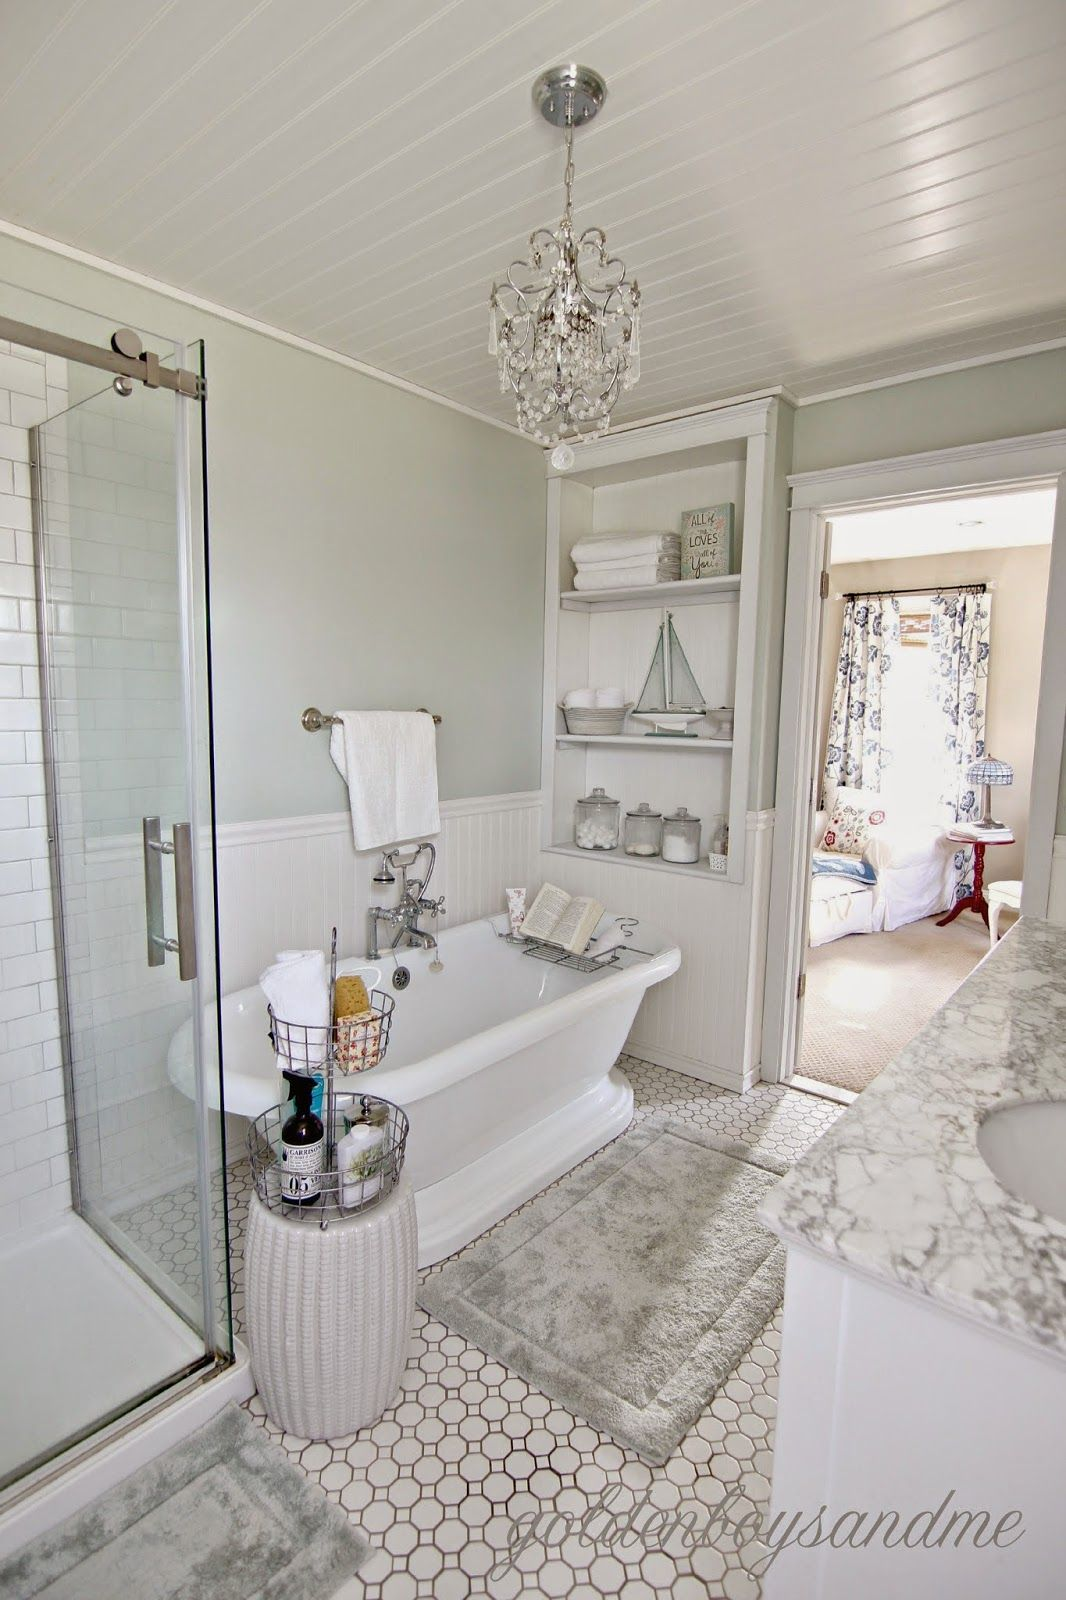 Image Of Bathroom Design Revisiting The Master Bathroom And Our 2 Year Blogiversary